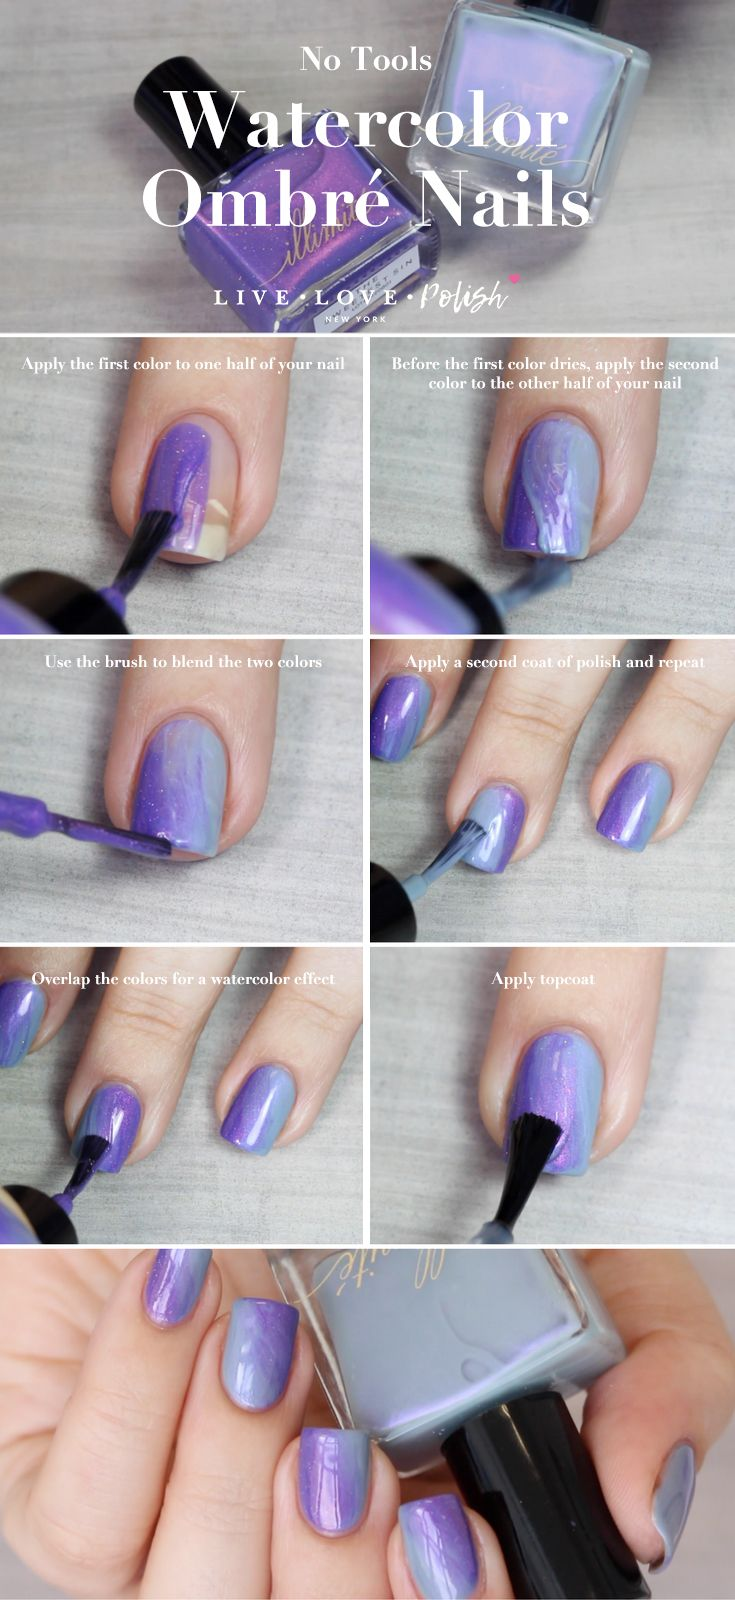 152 best Hair & Nails images on Pinterest   Nail scissors, Ongles ...